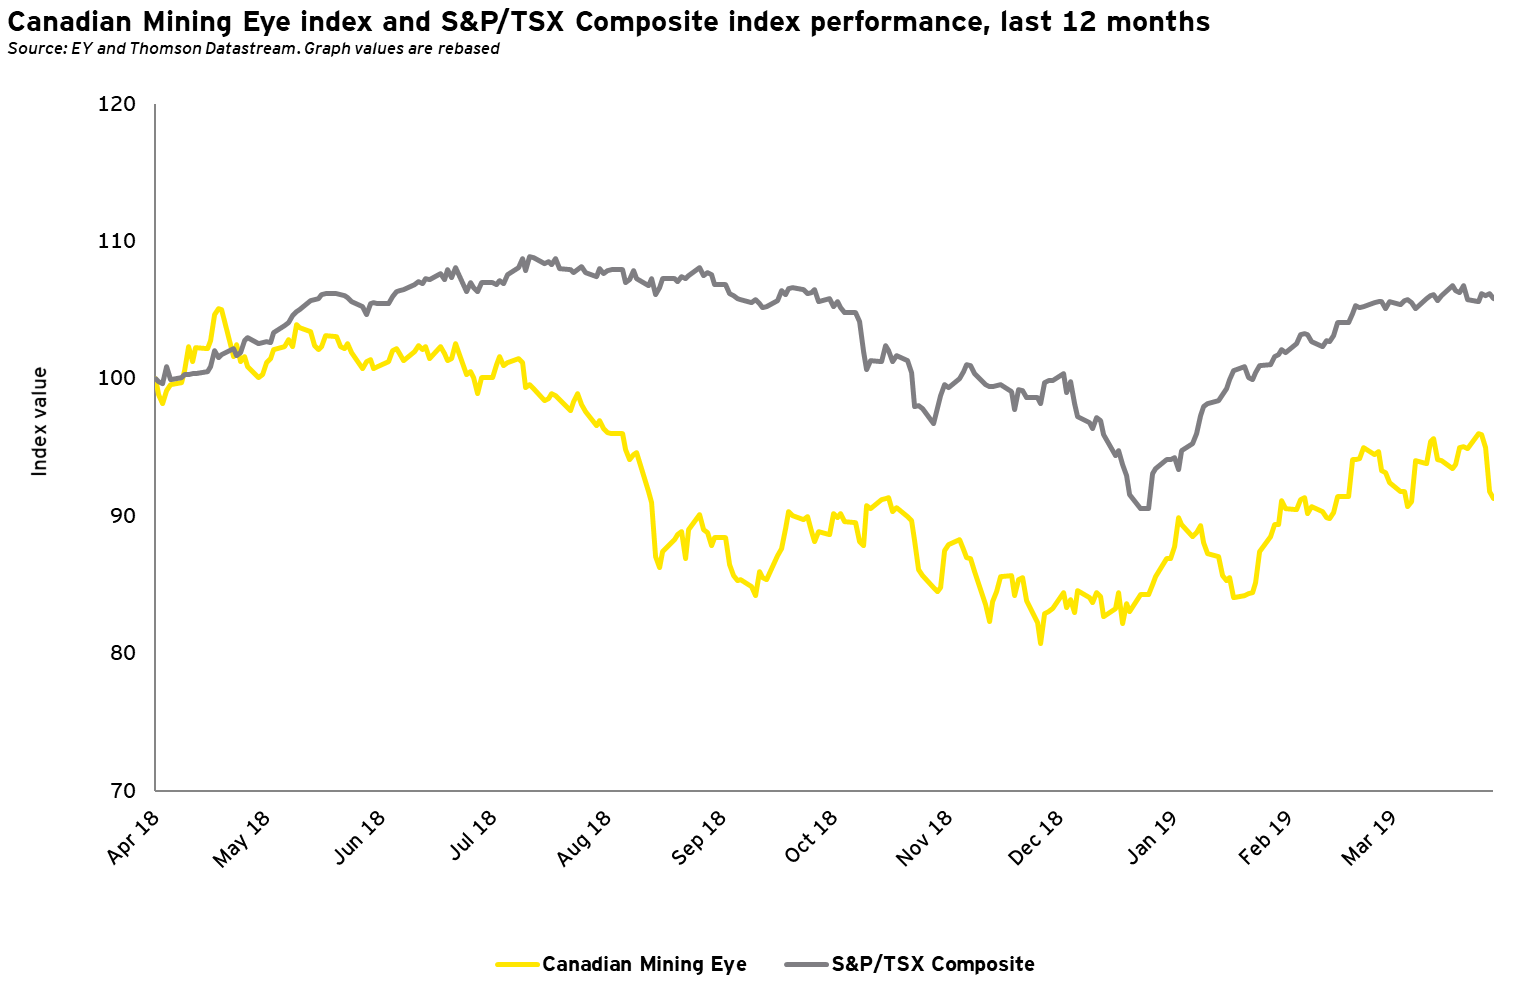 Mining Eye index and S&P/TSX Composite index performance, last 12 months - Q1 2019